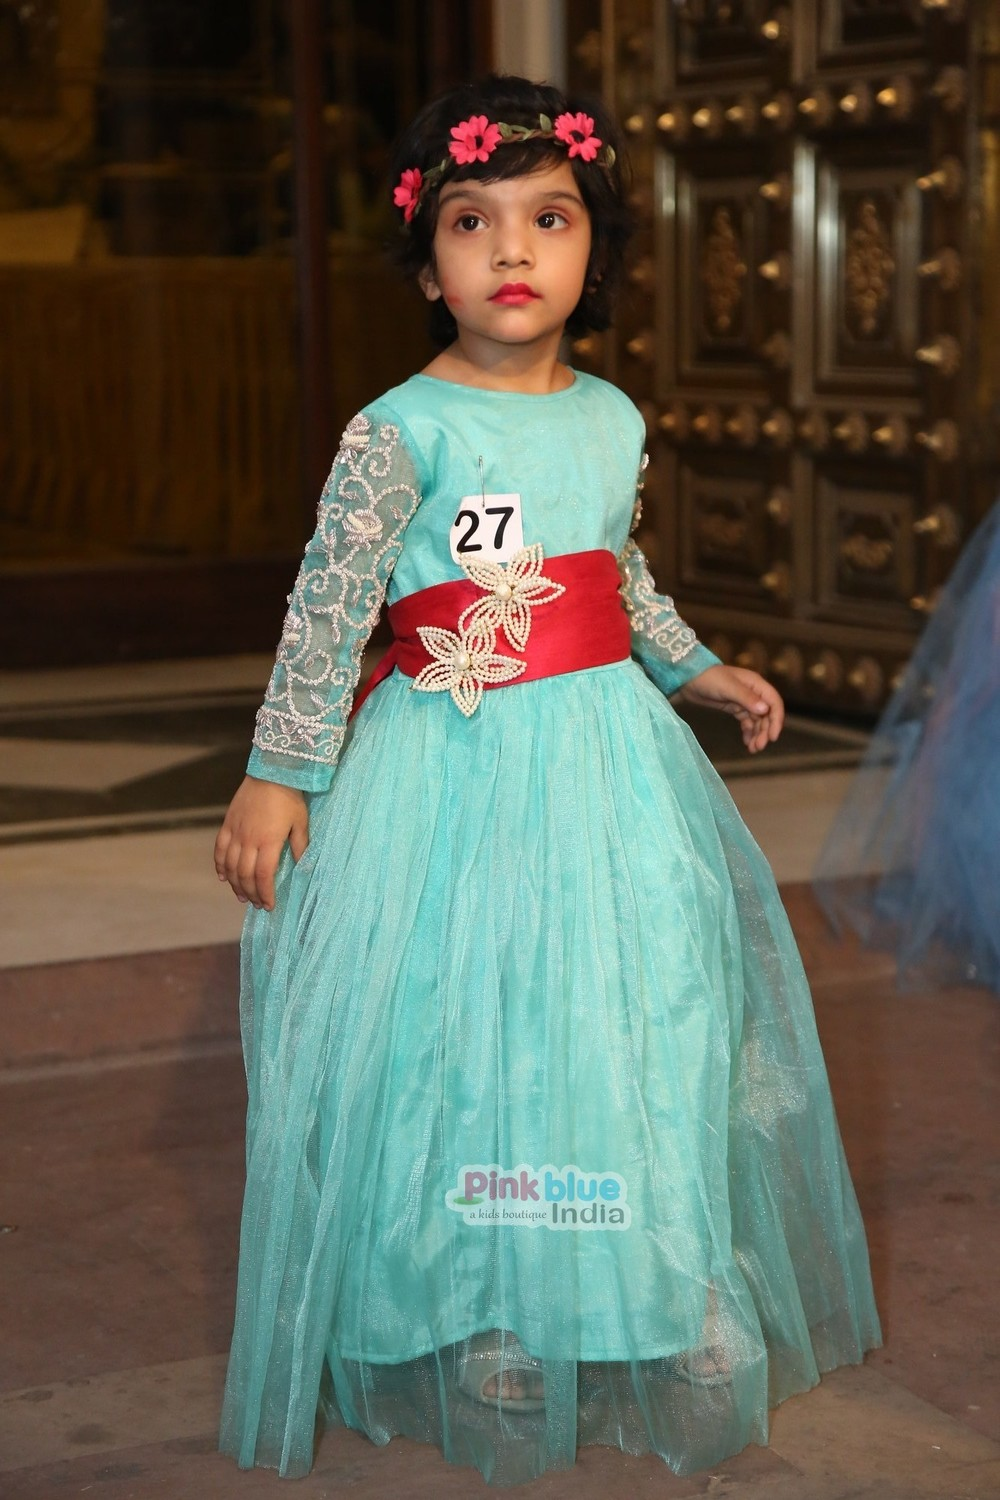 5 Most Fashionable Baby Girl Indian Wedding Outfits in Attractive ...